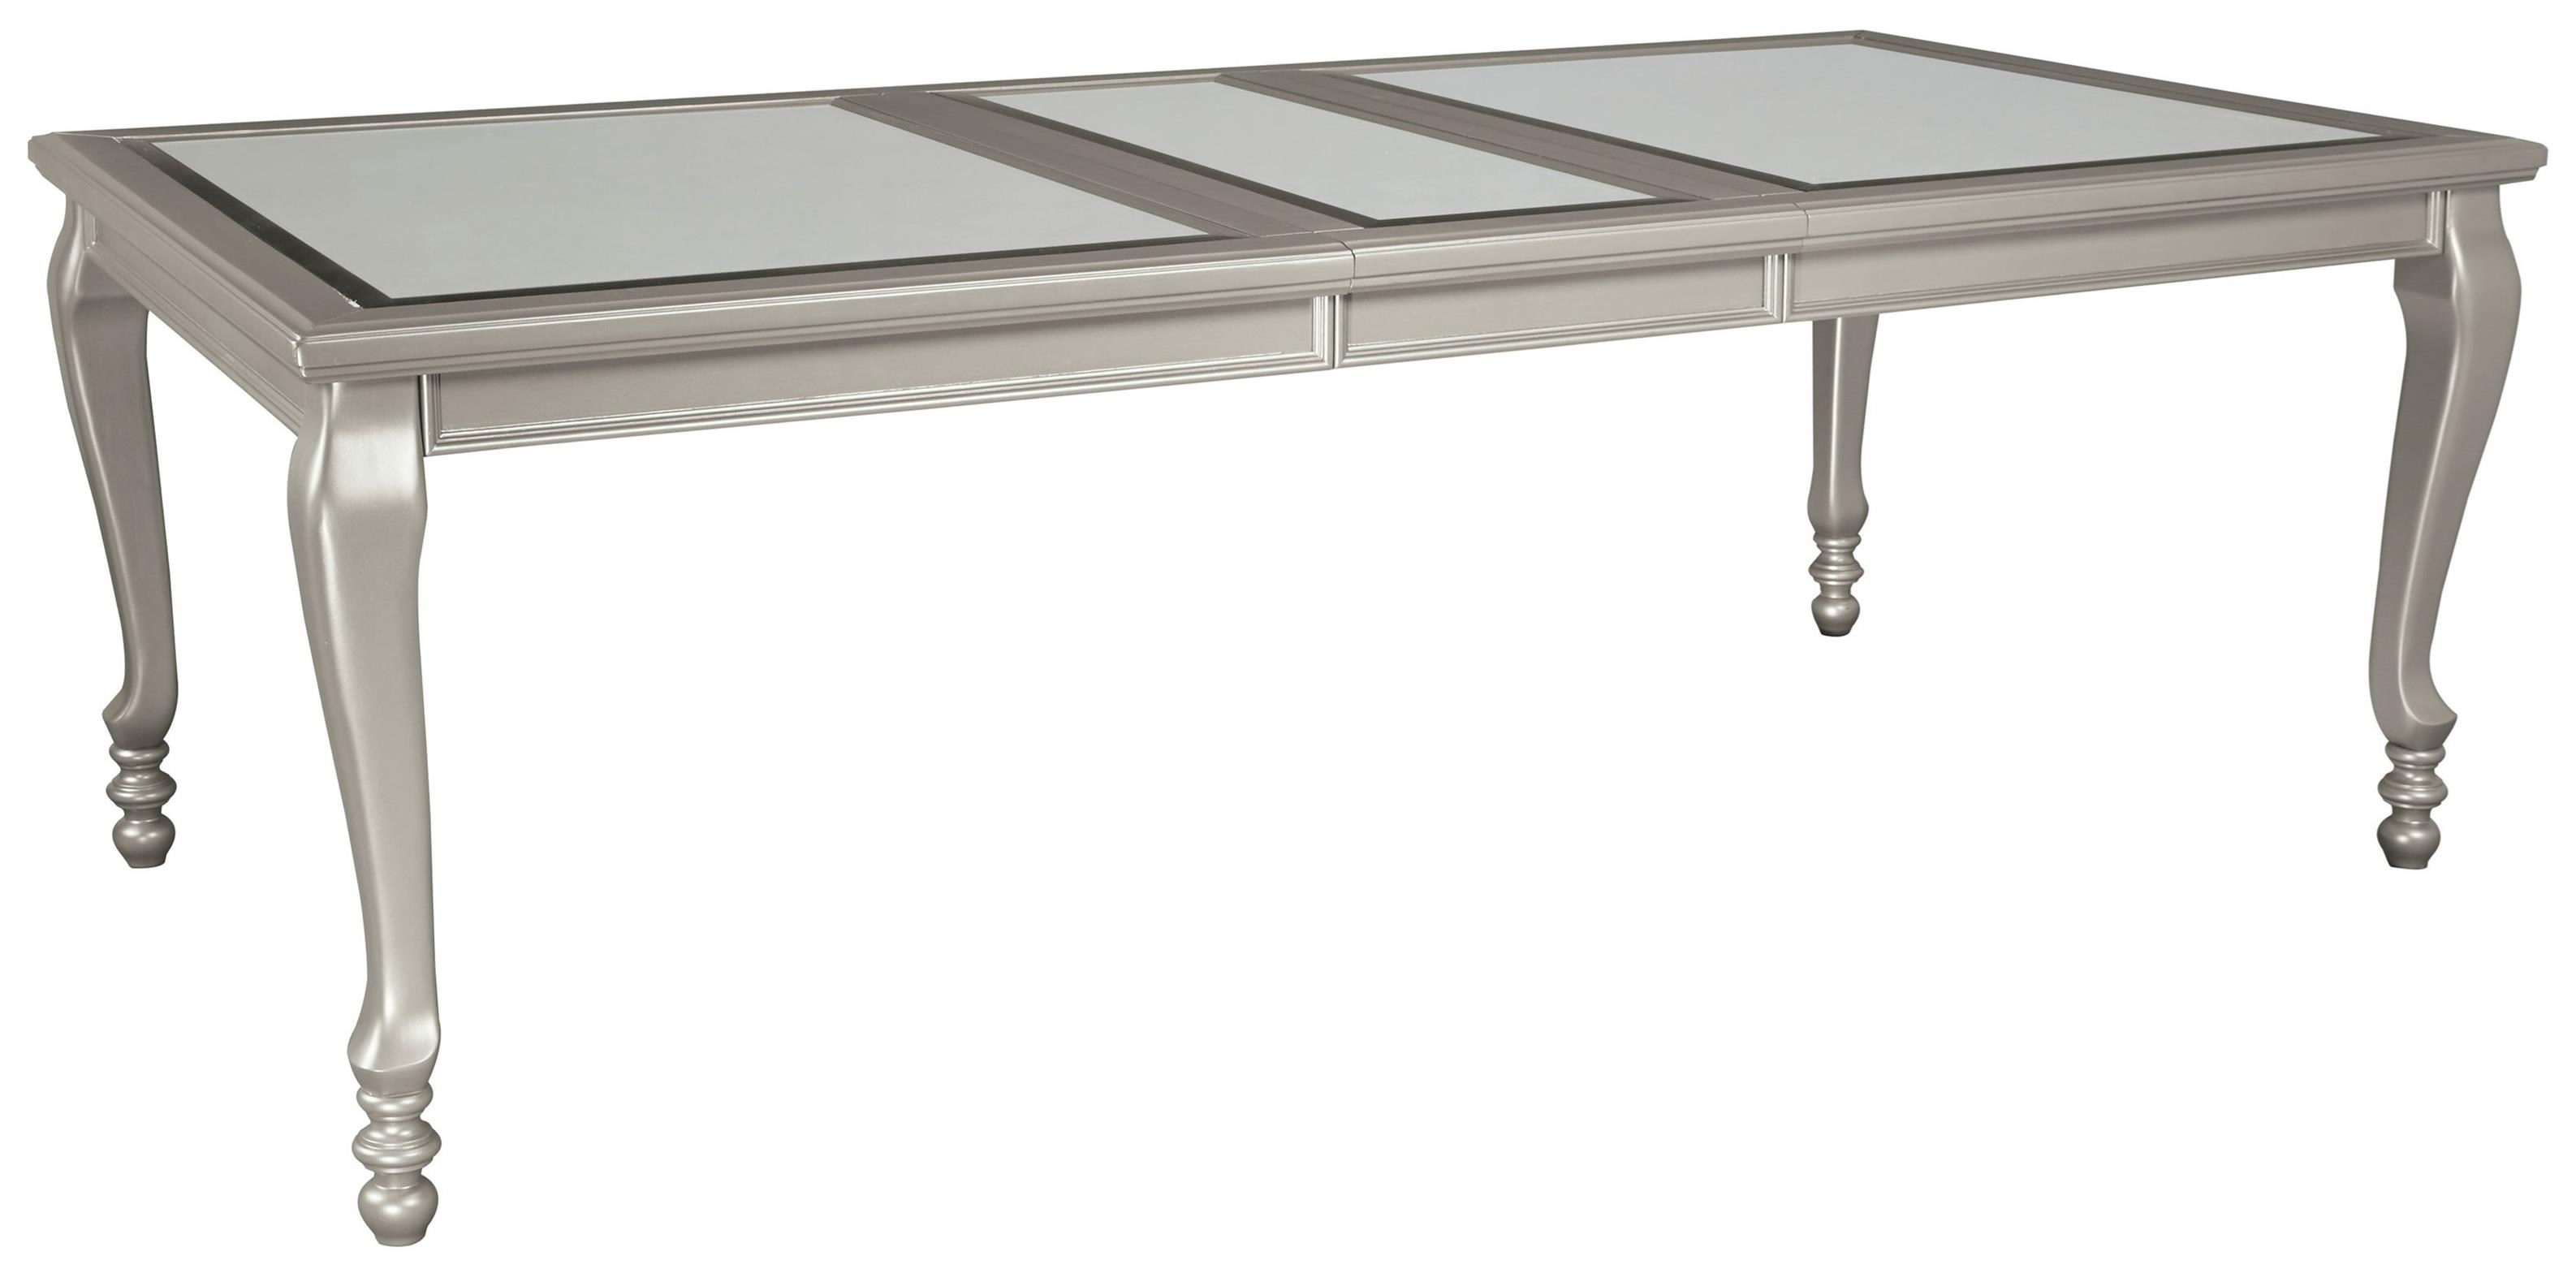 Signature Design by Ashley Coralayne Rectangular Dining Room Extension Table - Item Number: D650-35